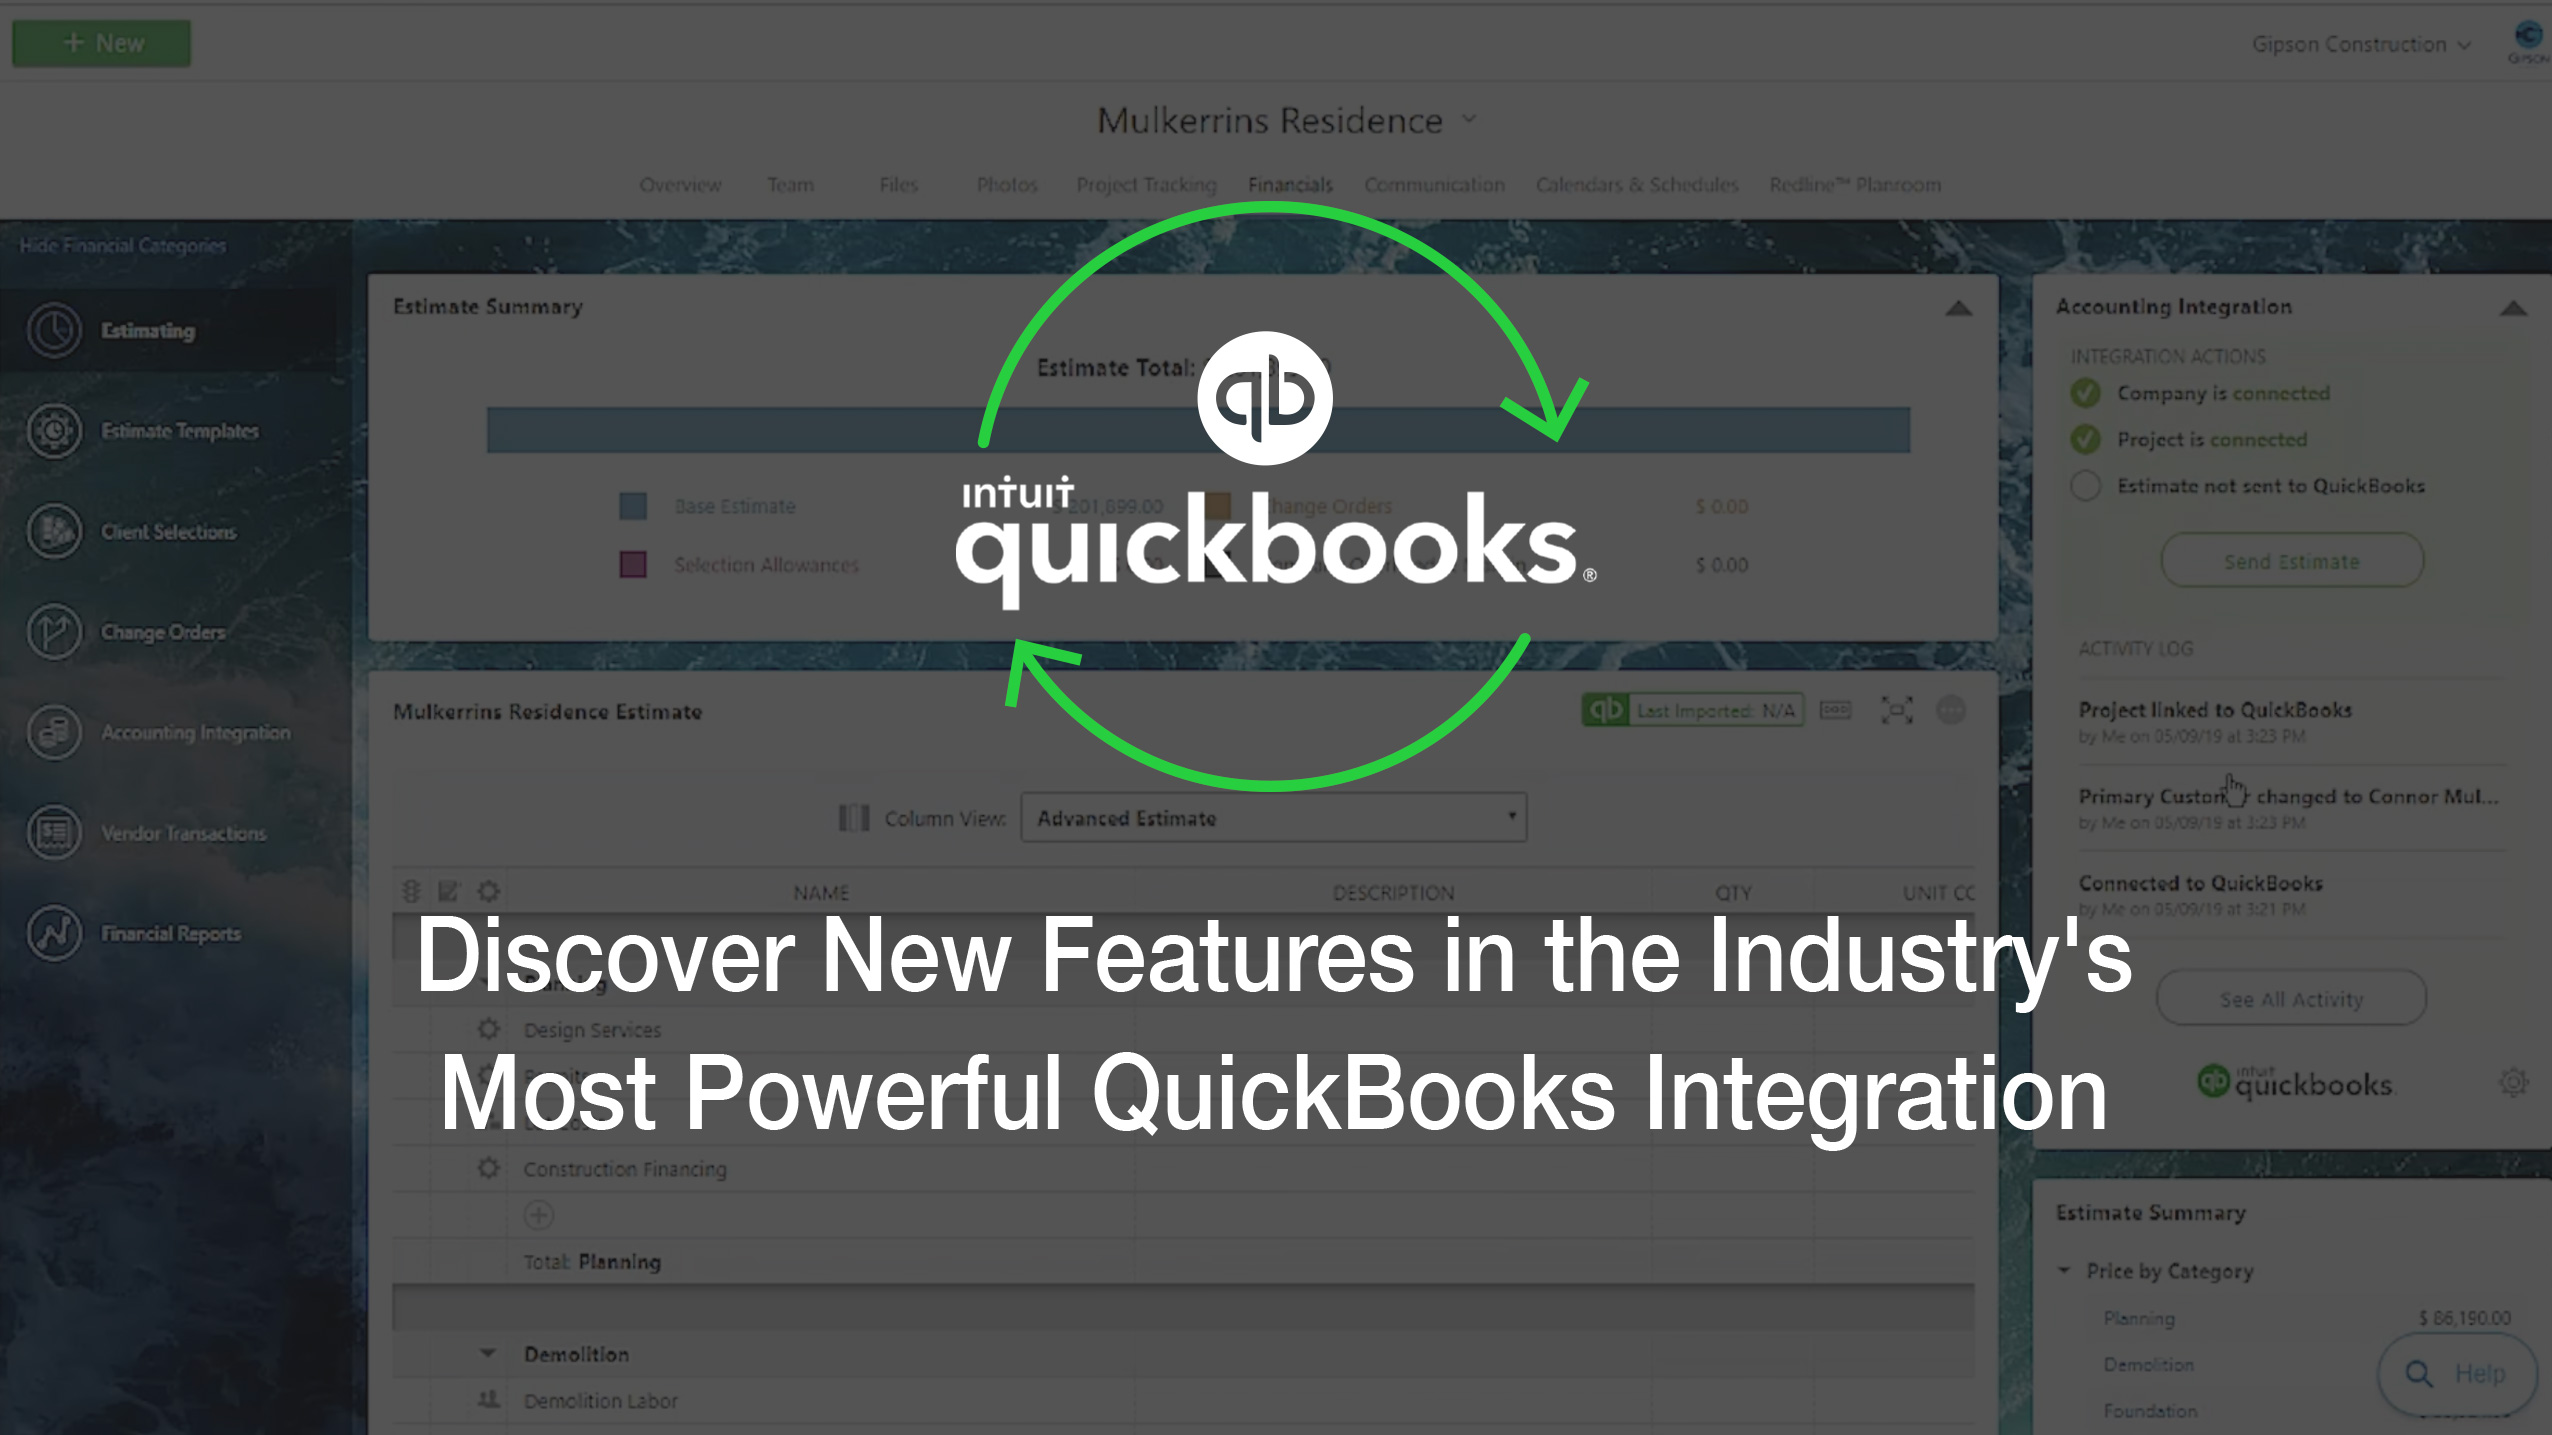 Discover New Features in the Industry's Most Powerful QB Integration